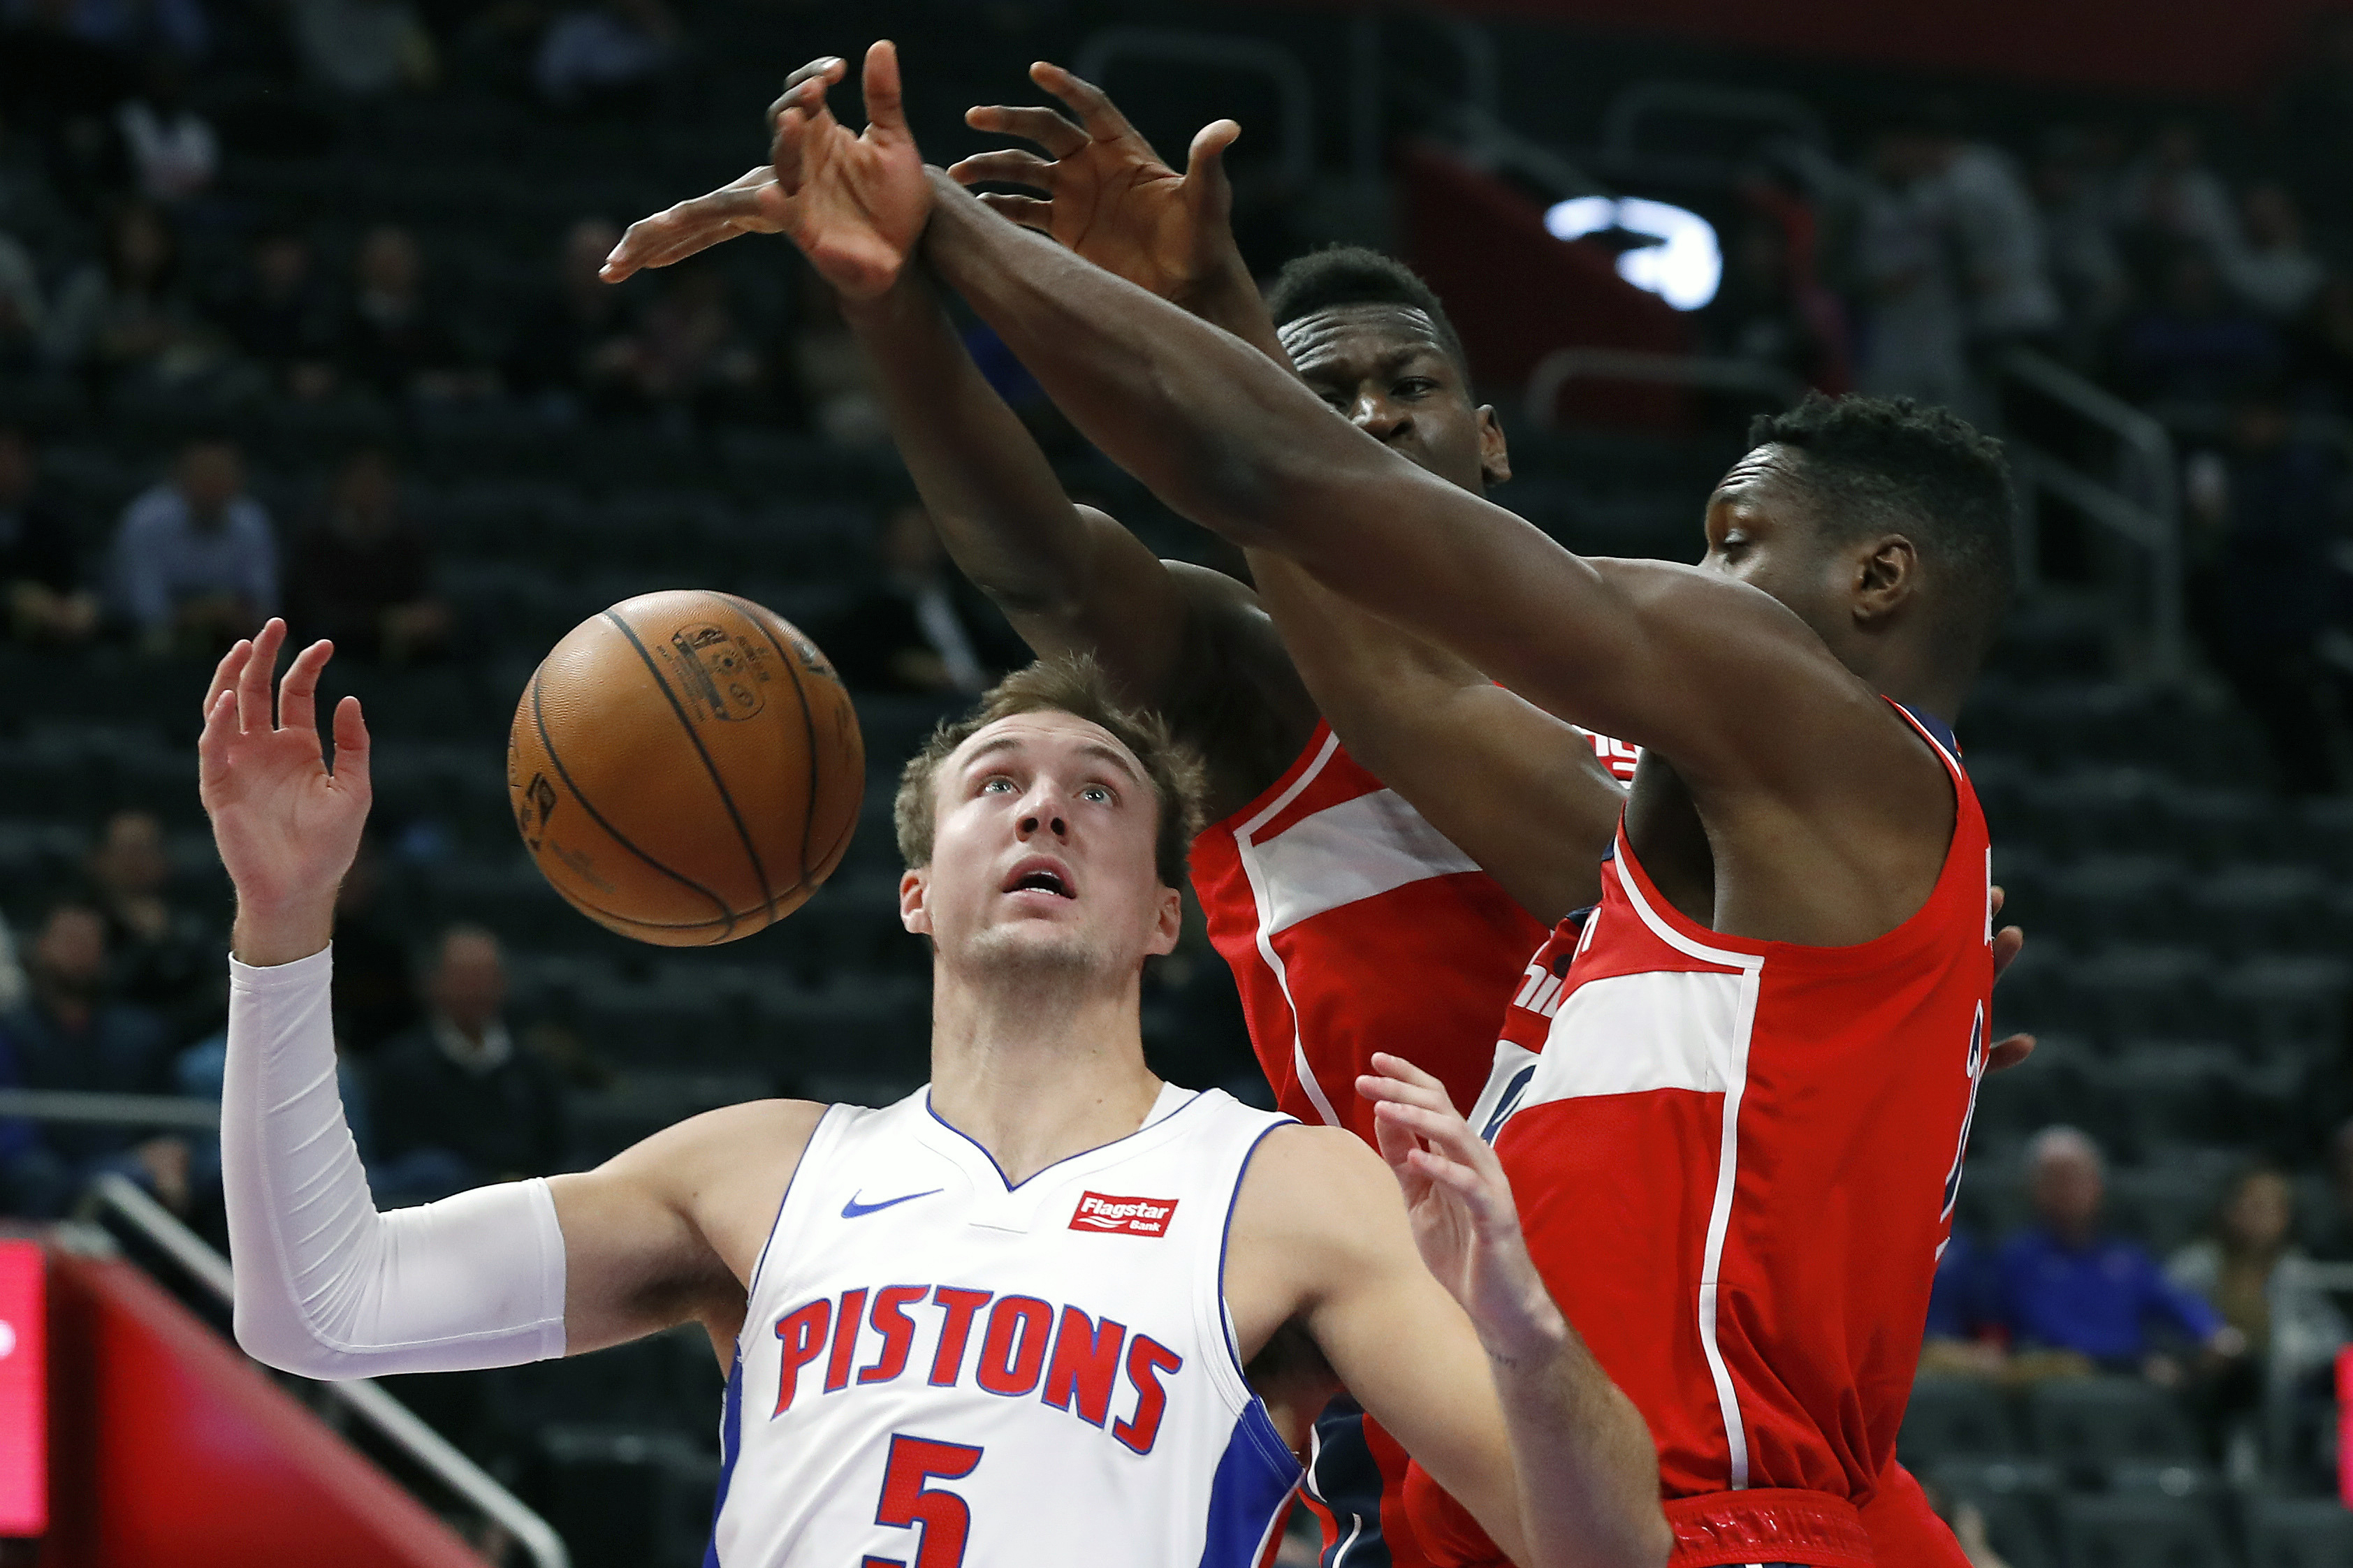 Pistons guard Luke Kennard out 2 weeks with knee tendinitis